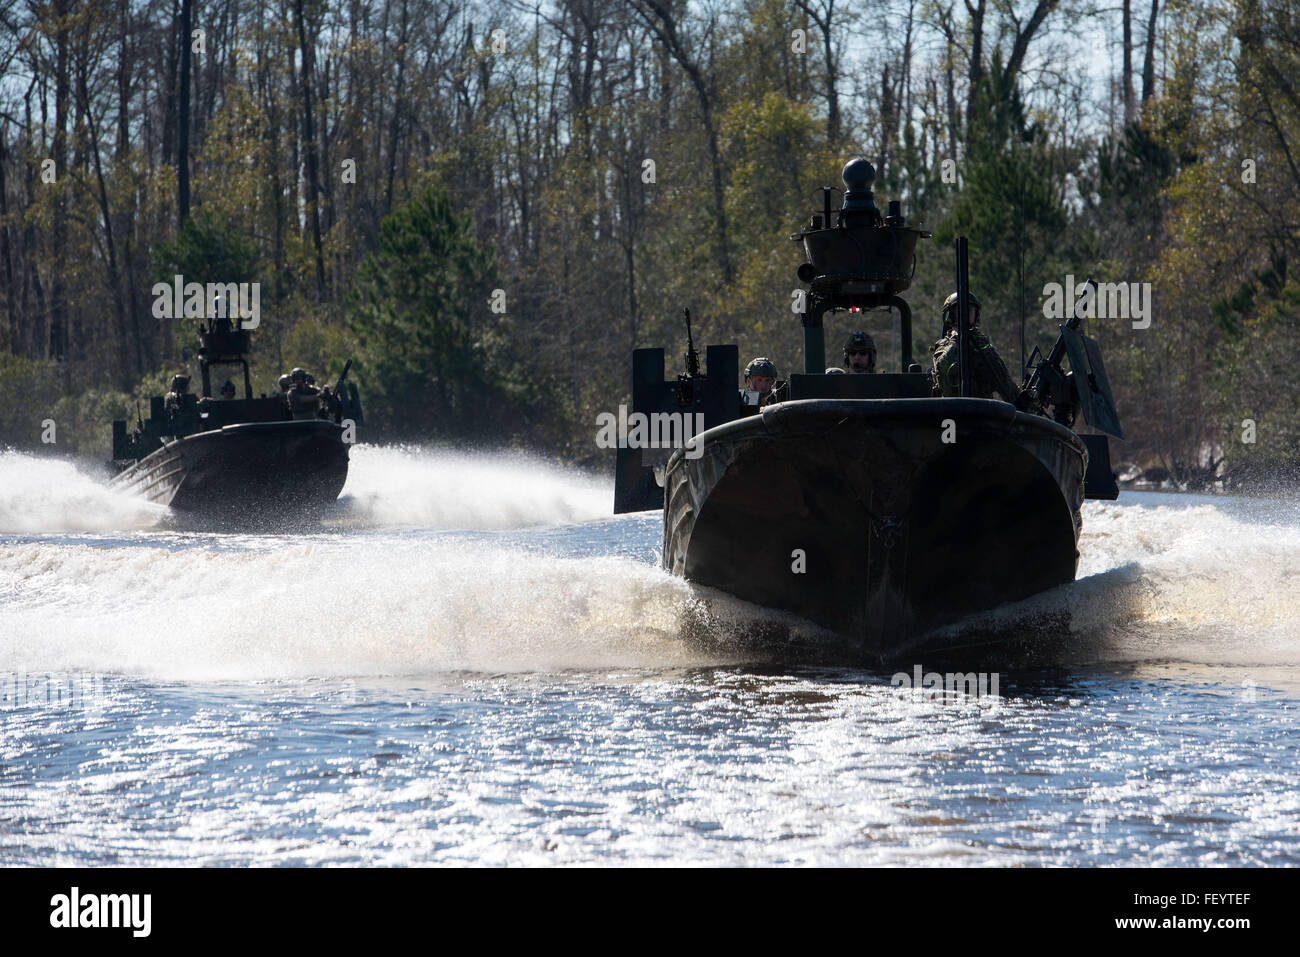 160108-N-AT895-1144 STENNIS SPACE CENTER, Miss. (Jan. 8, 2016) Special warfare combatant-craft crewmen (SWCC) from Stock Photo